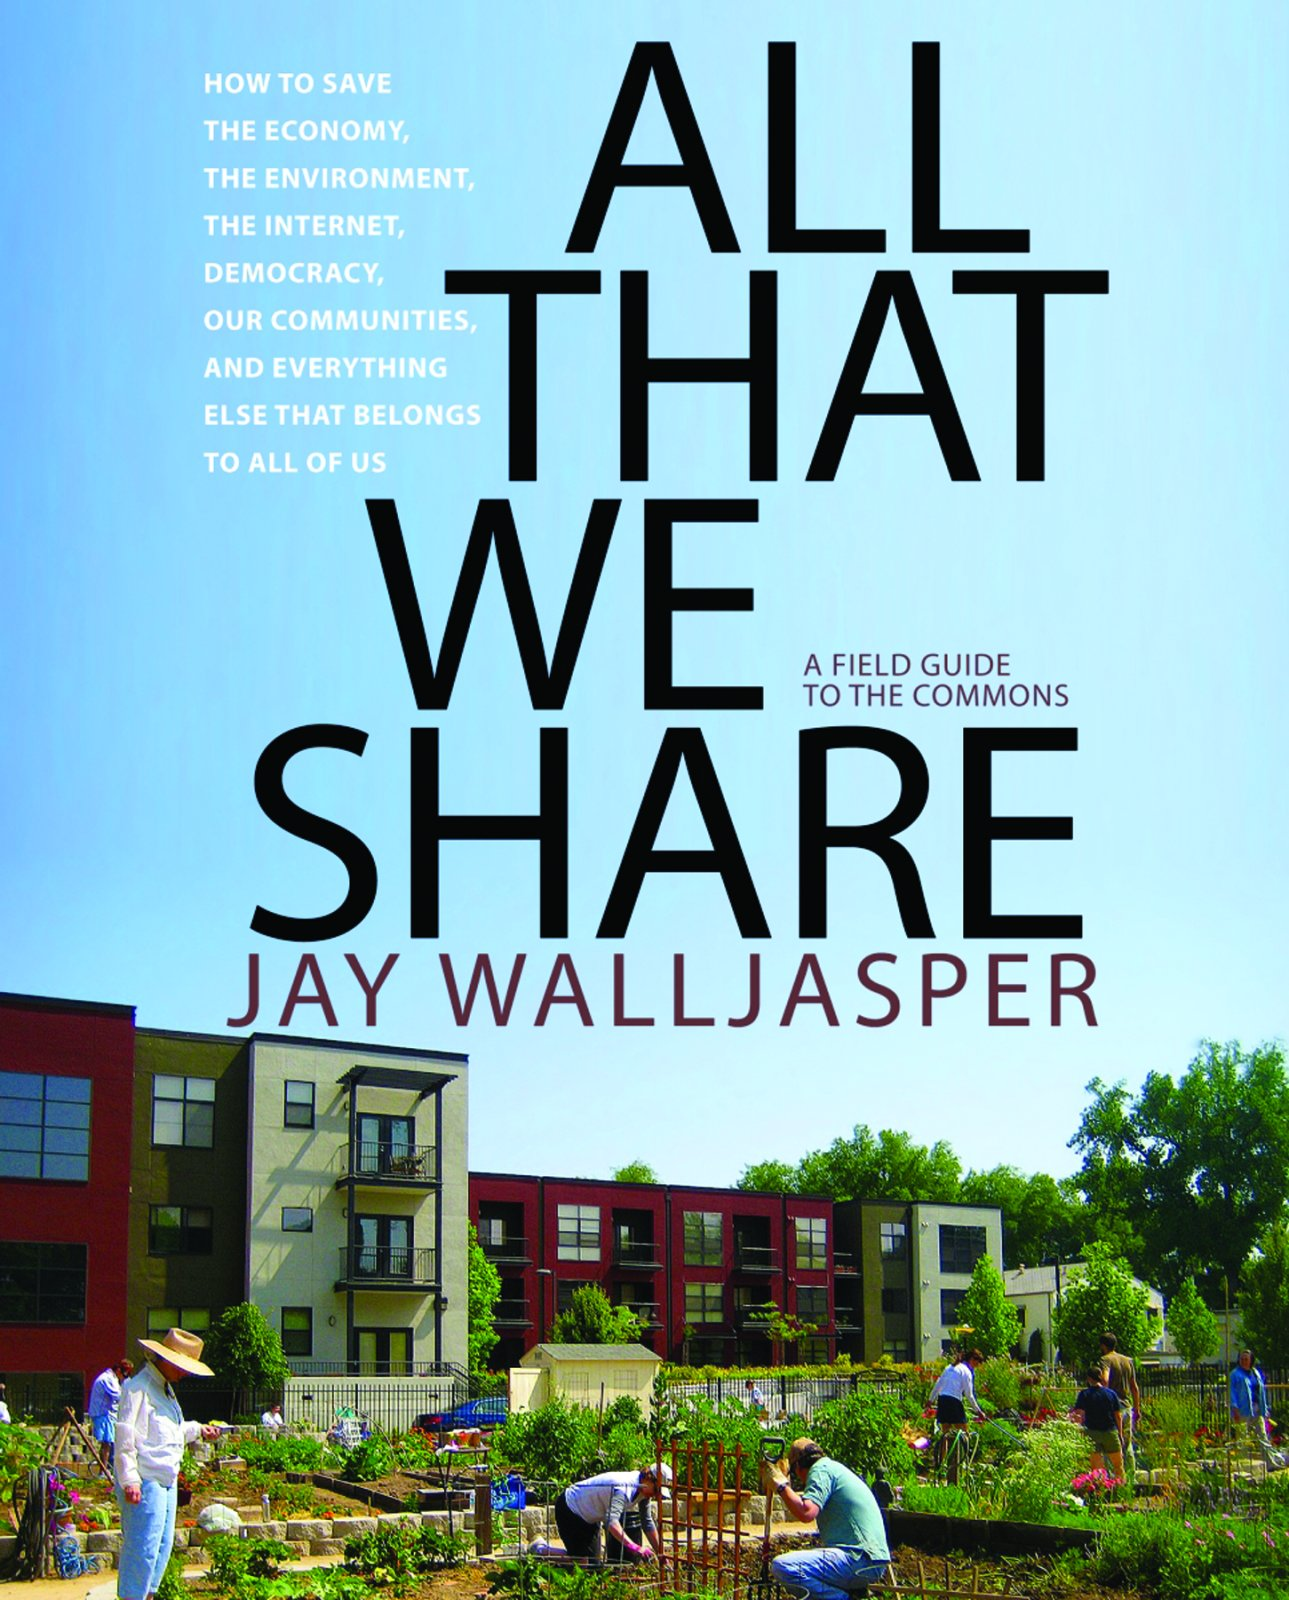 Download All That We Share: How to Save the Economy, the Environment, the Internet, Democracy, Our Communities and Everything Else that Belongs to All of Us pdf